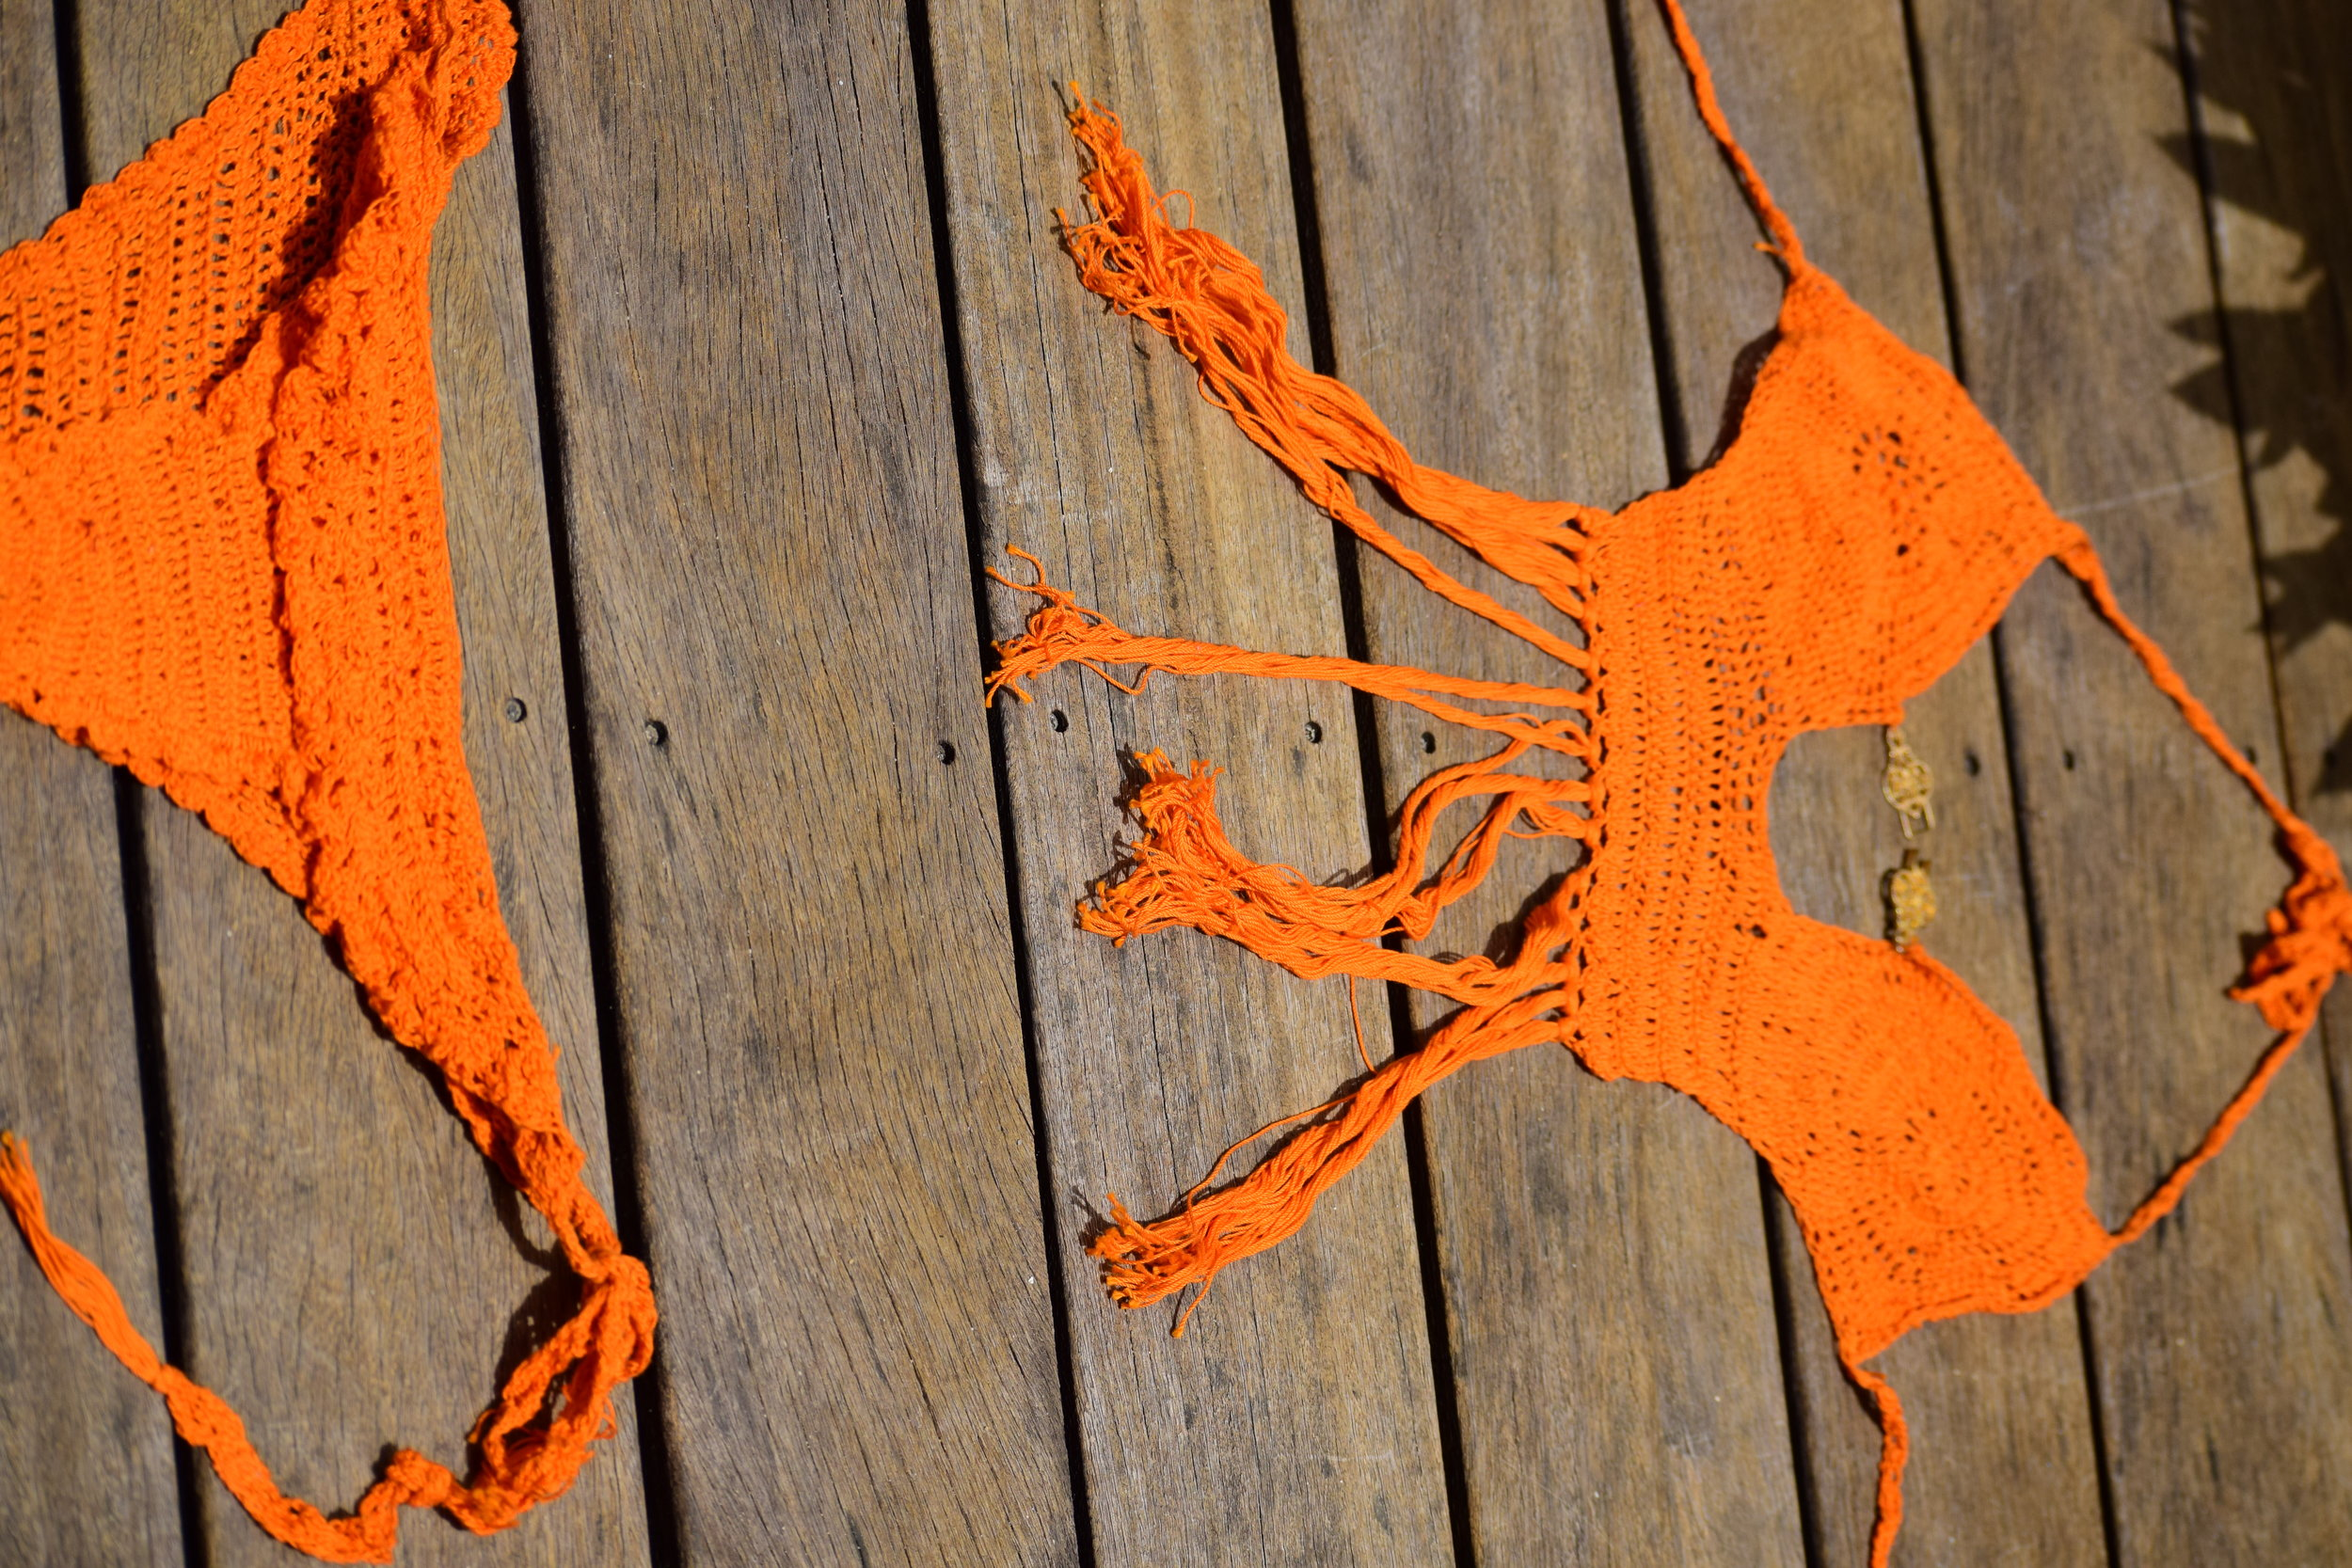 MSW-orange bikini wood.JPG